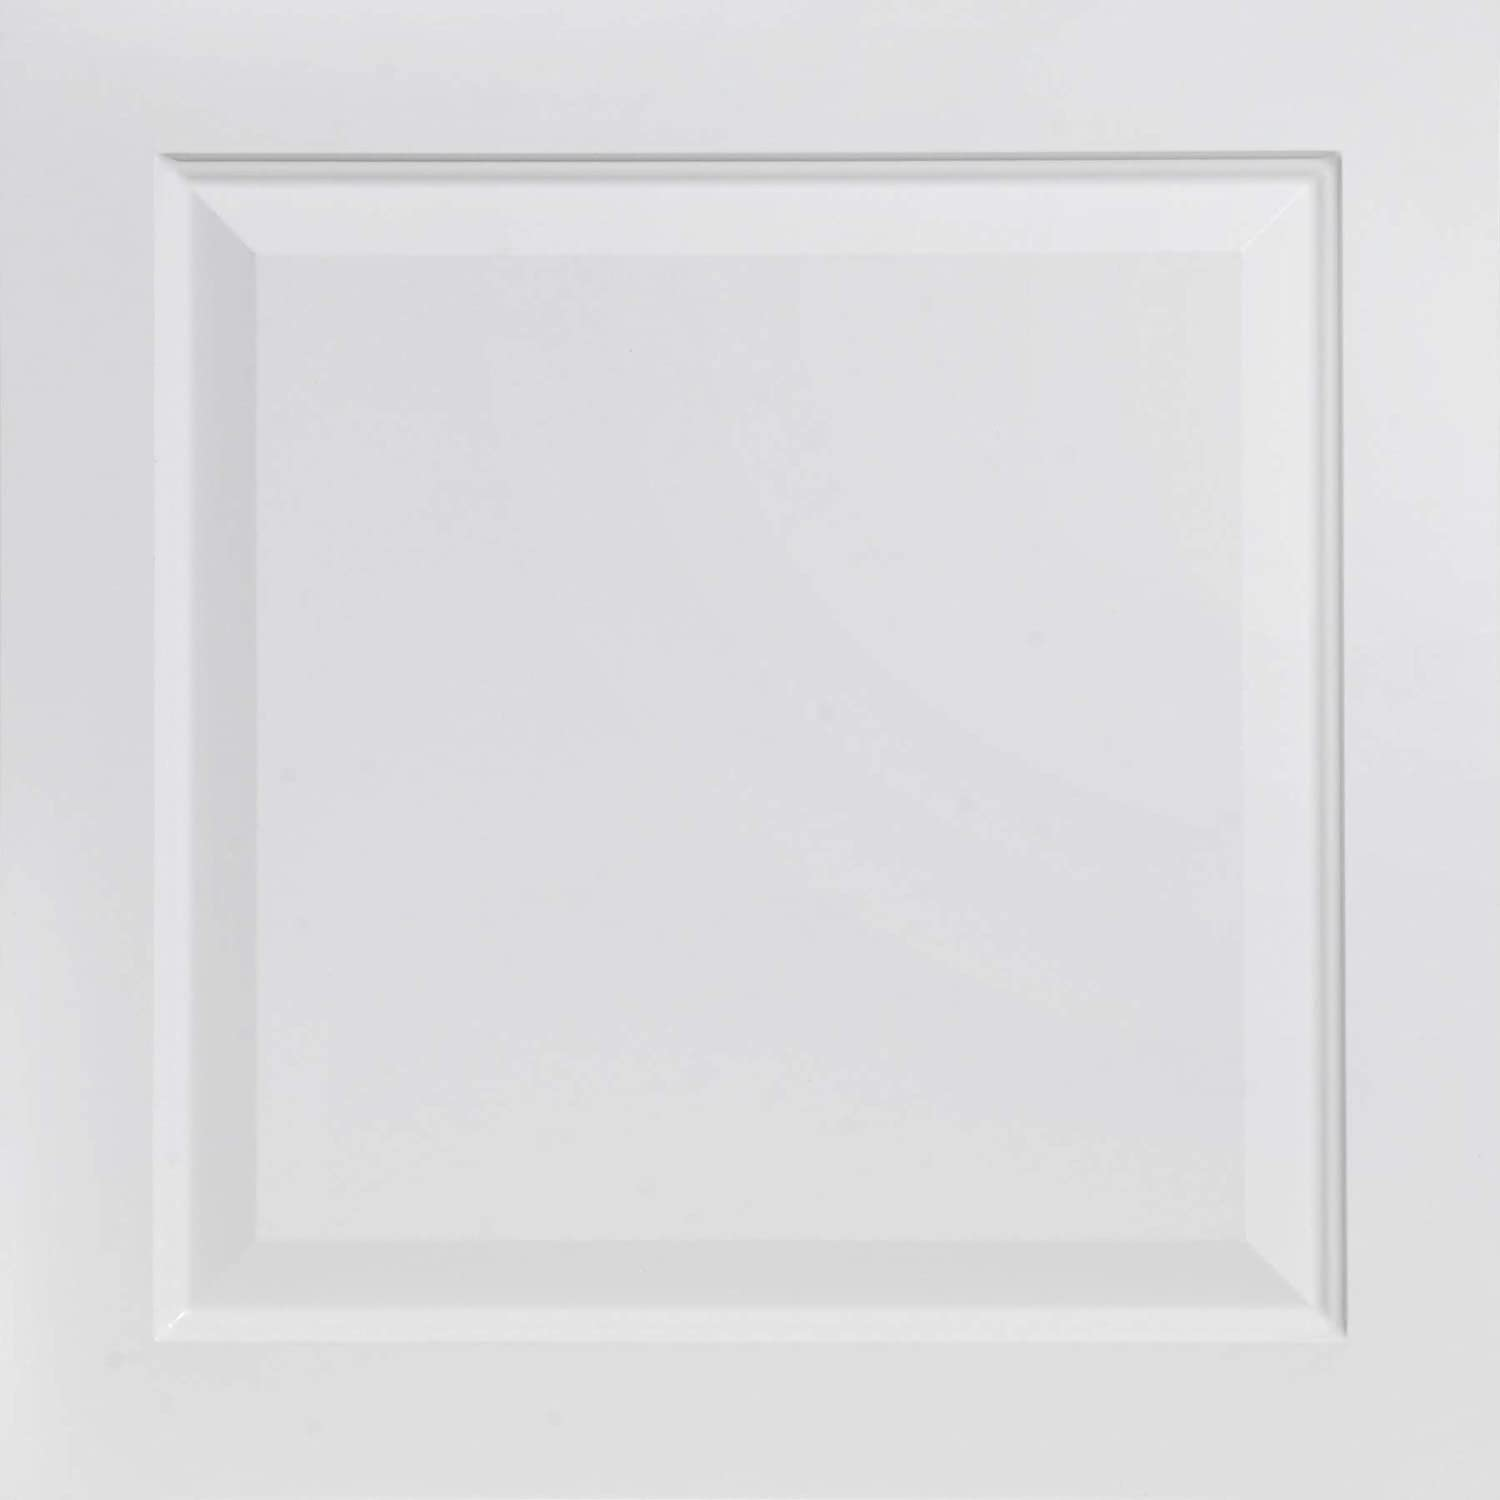 From Plain To Beautiful In Hours 505wm-24x24-25 Raised Panel Ceiling Tile White Mate 25